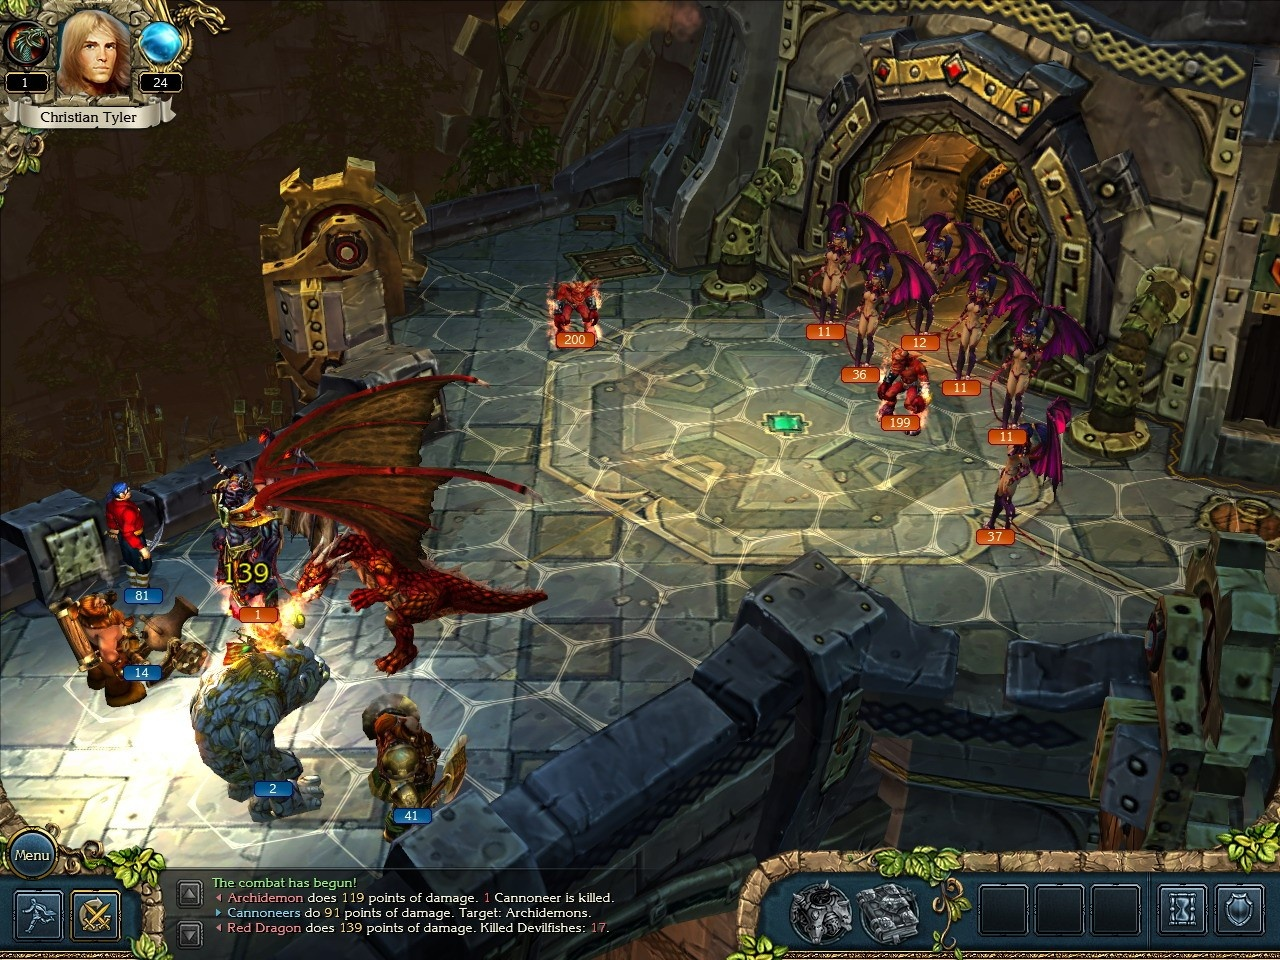 Combat in King's Bounty is turn-based and fraught with dragons.